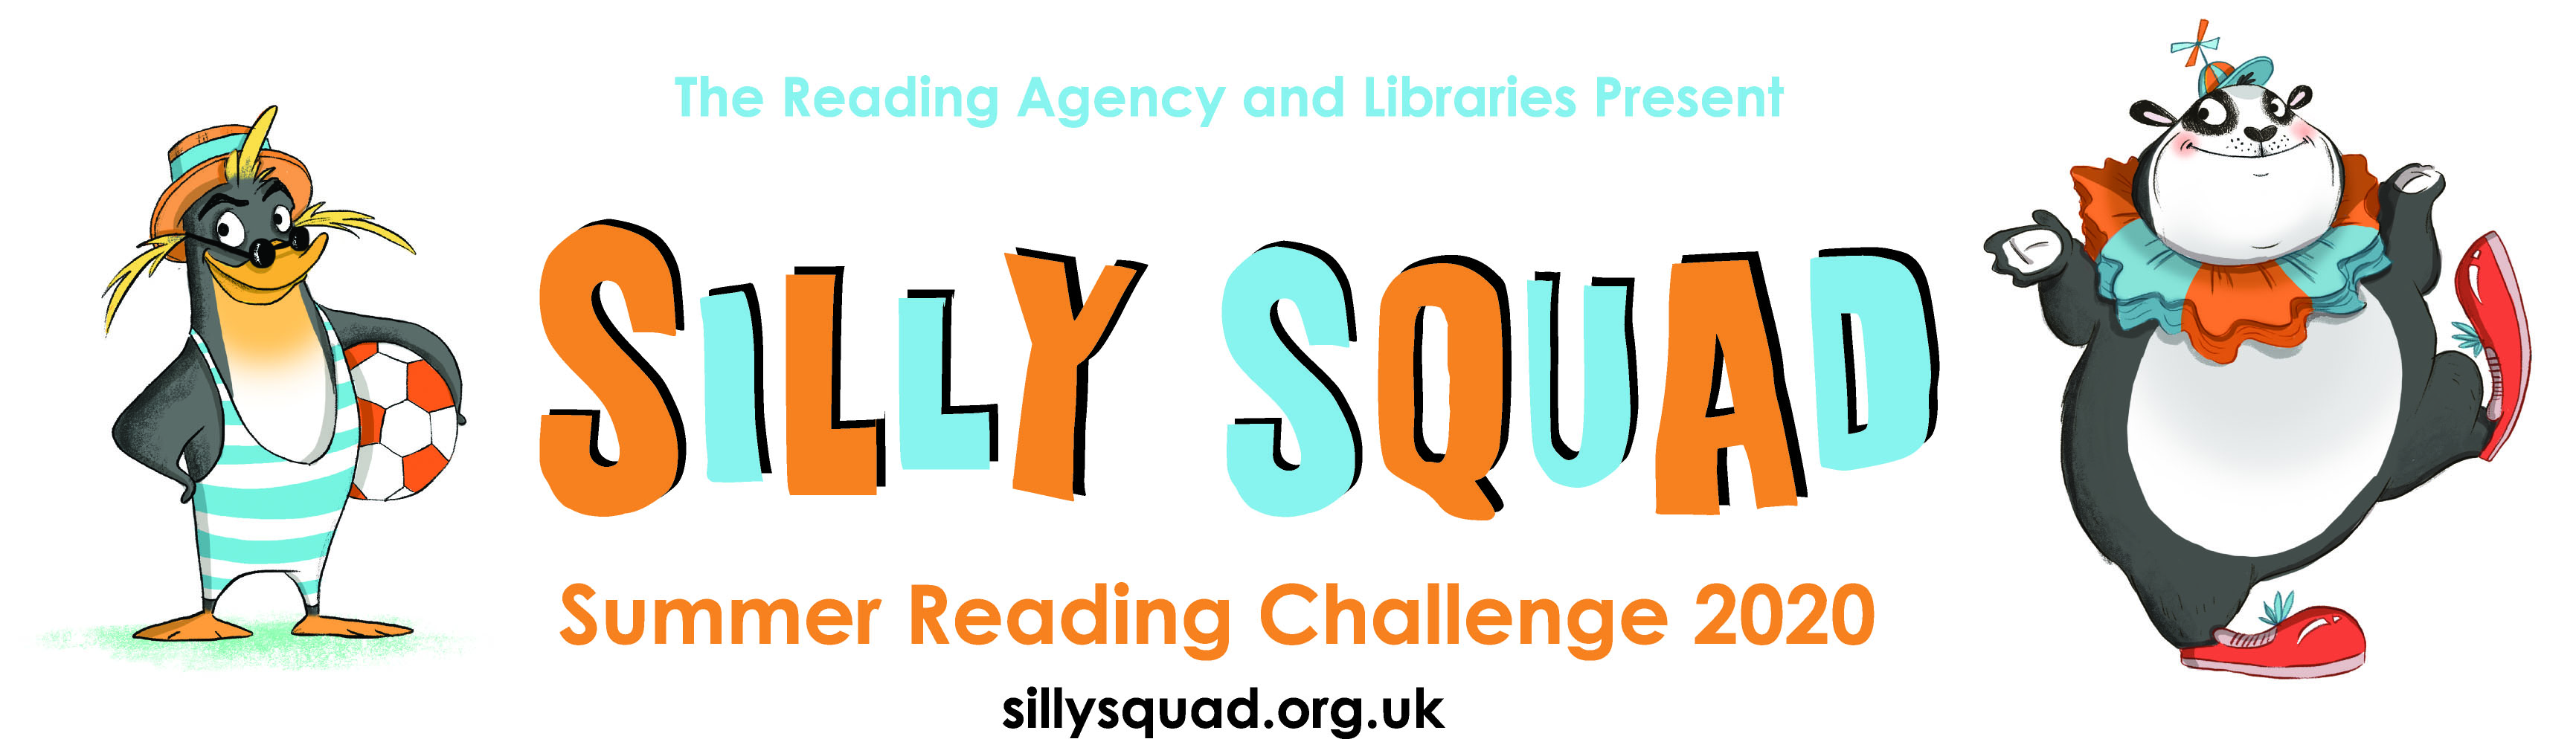 The Summer Reading Challenge encourages 722,731 children to read ...